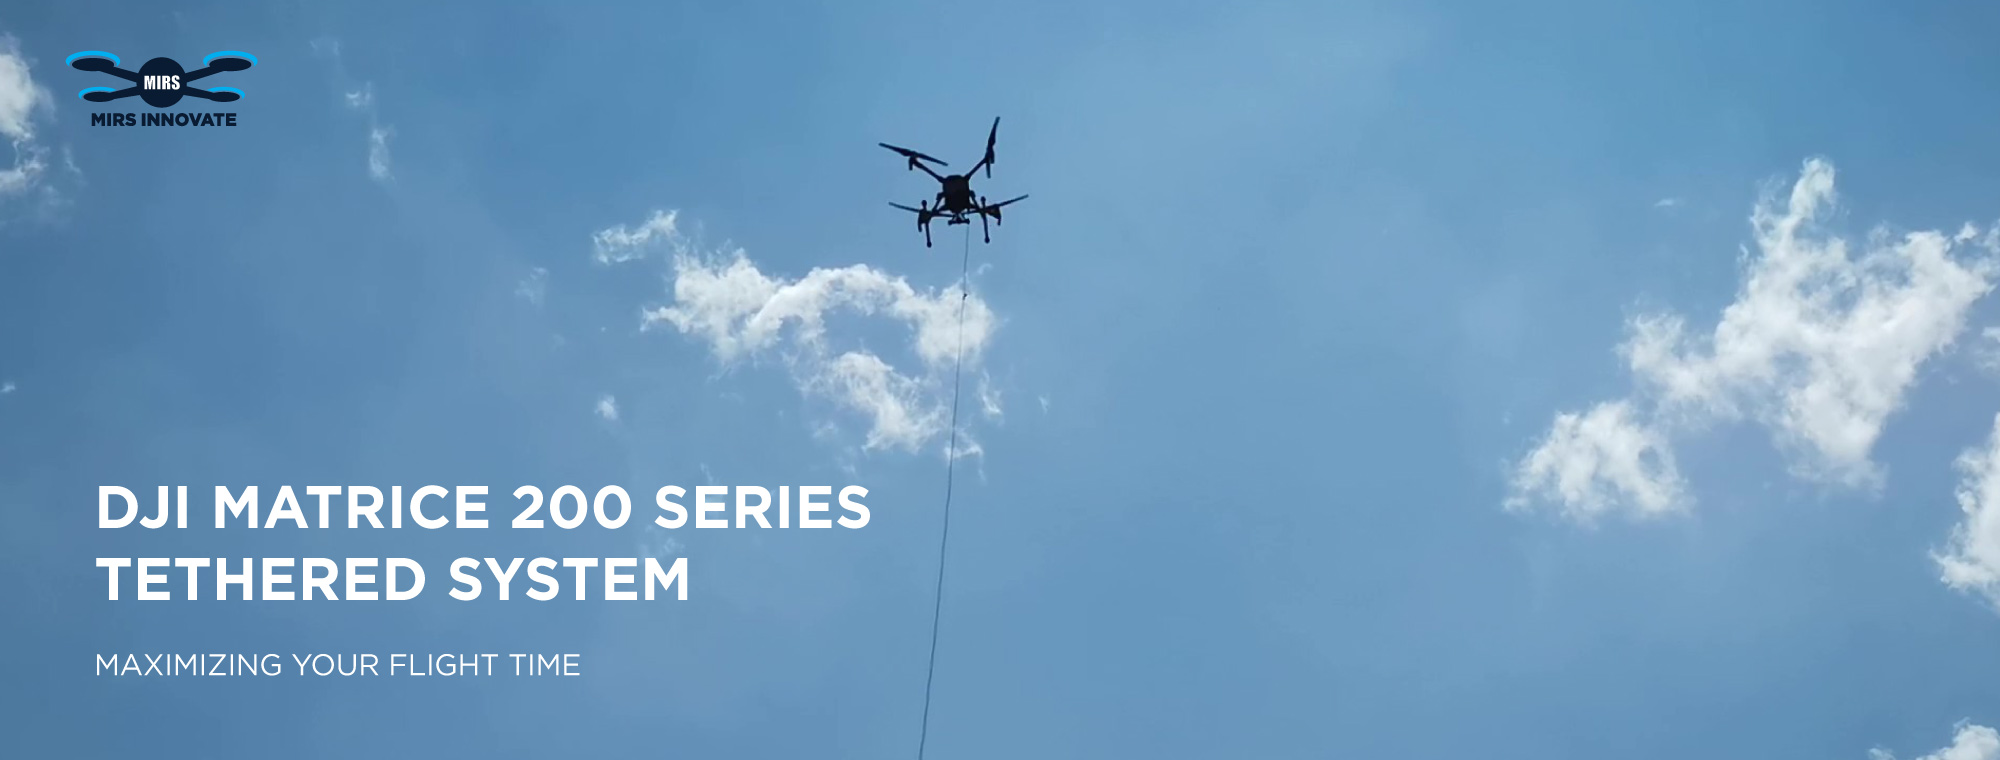 Matrice 200 Tethered System